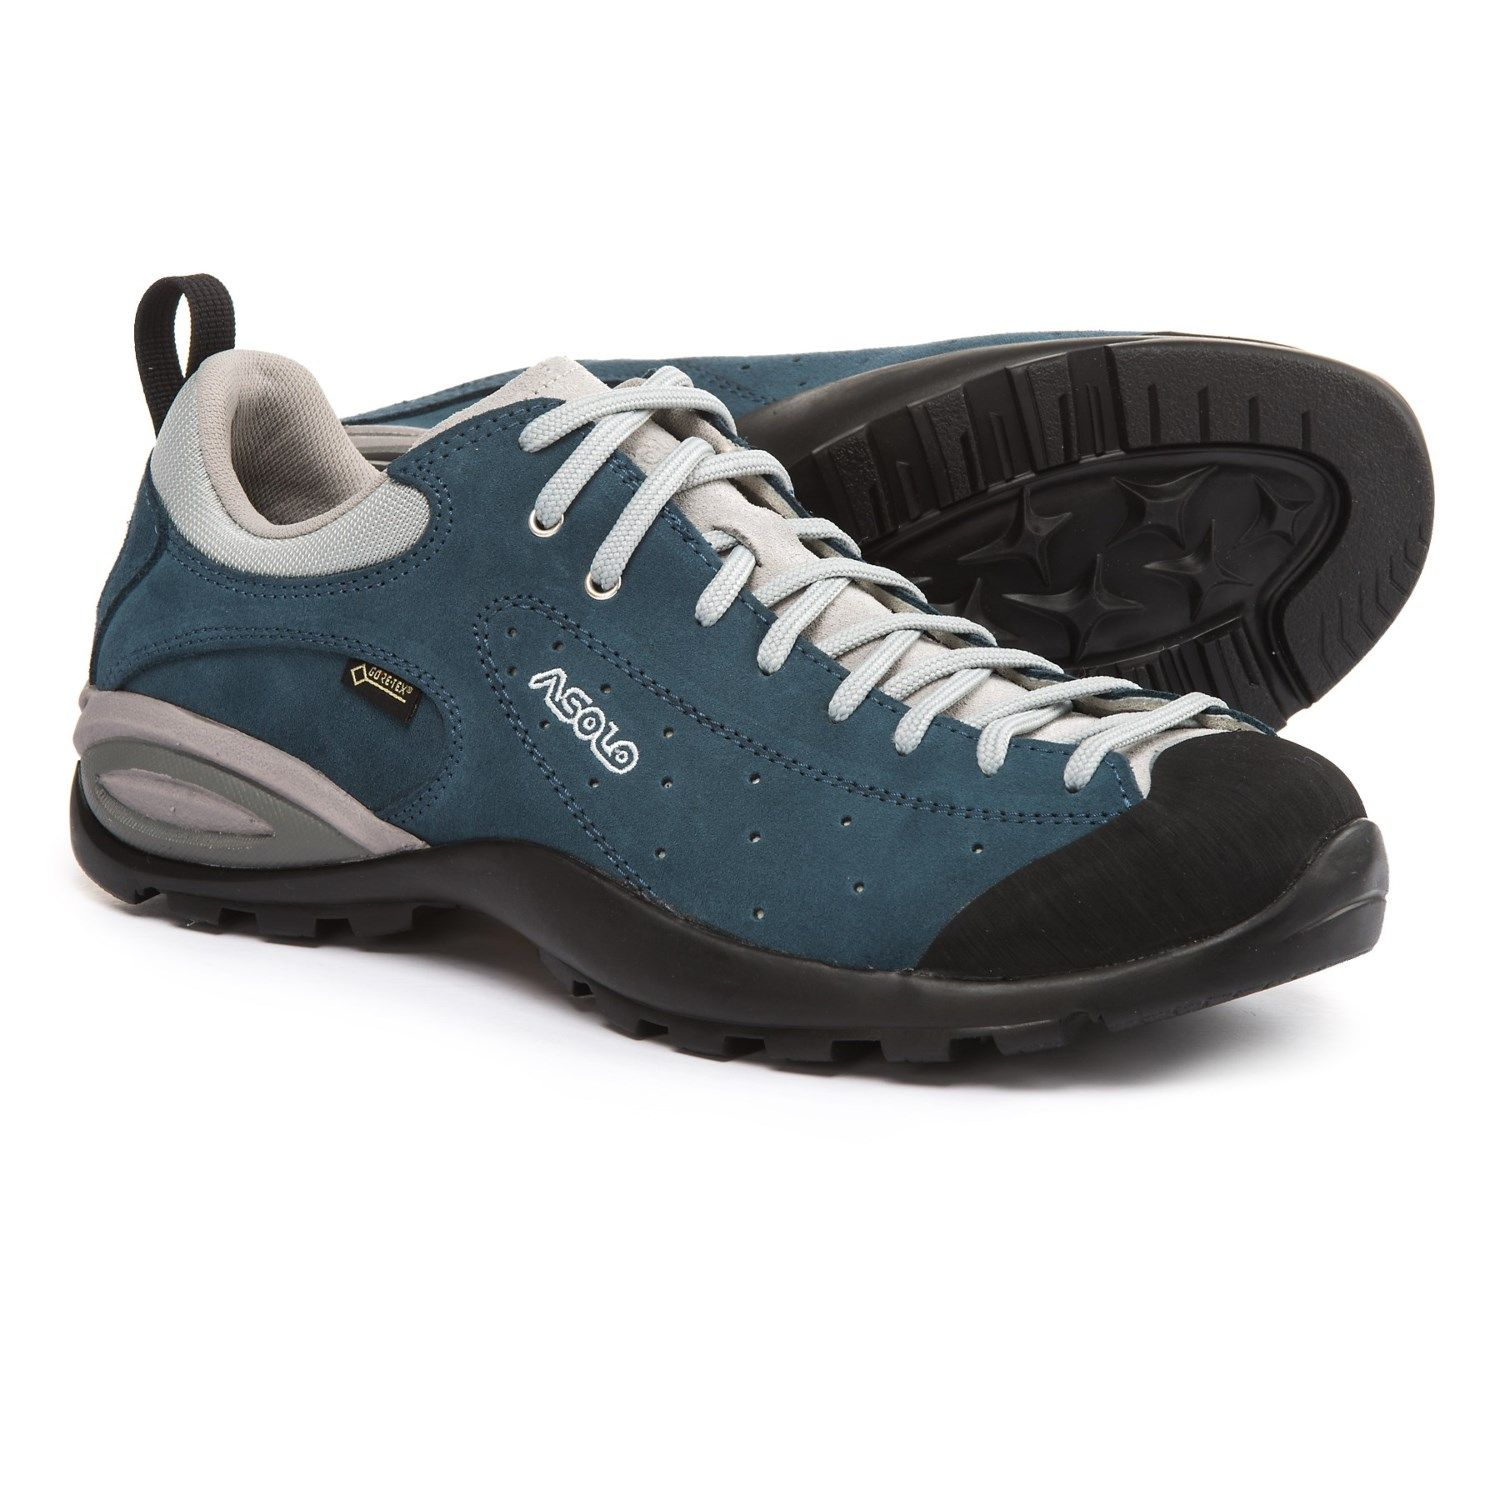 Asolo Shiver GV Gore-Tex® Hiking Shoes (For Men) - Save 42% 88b59facdac